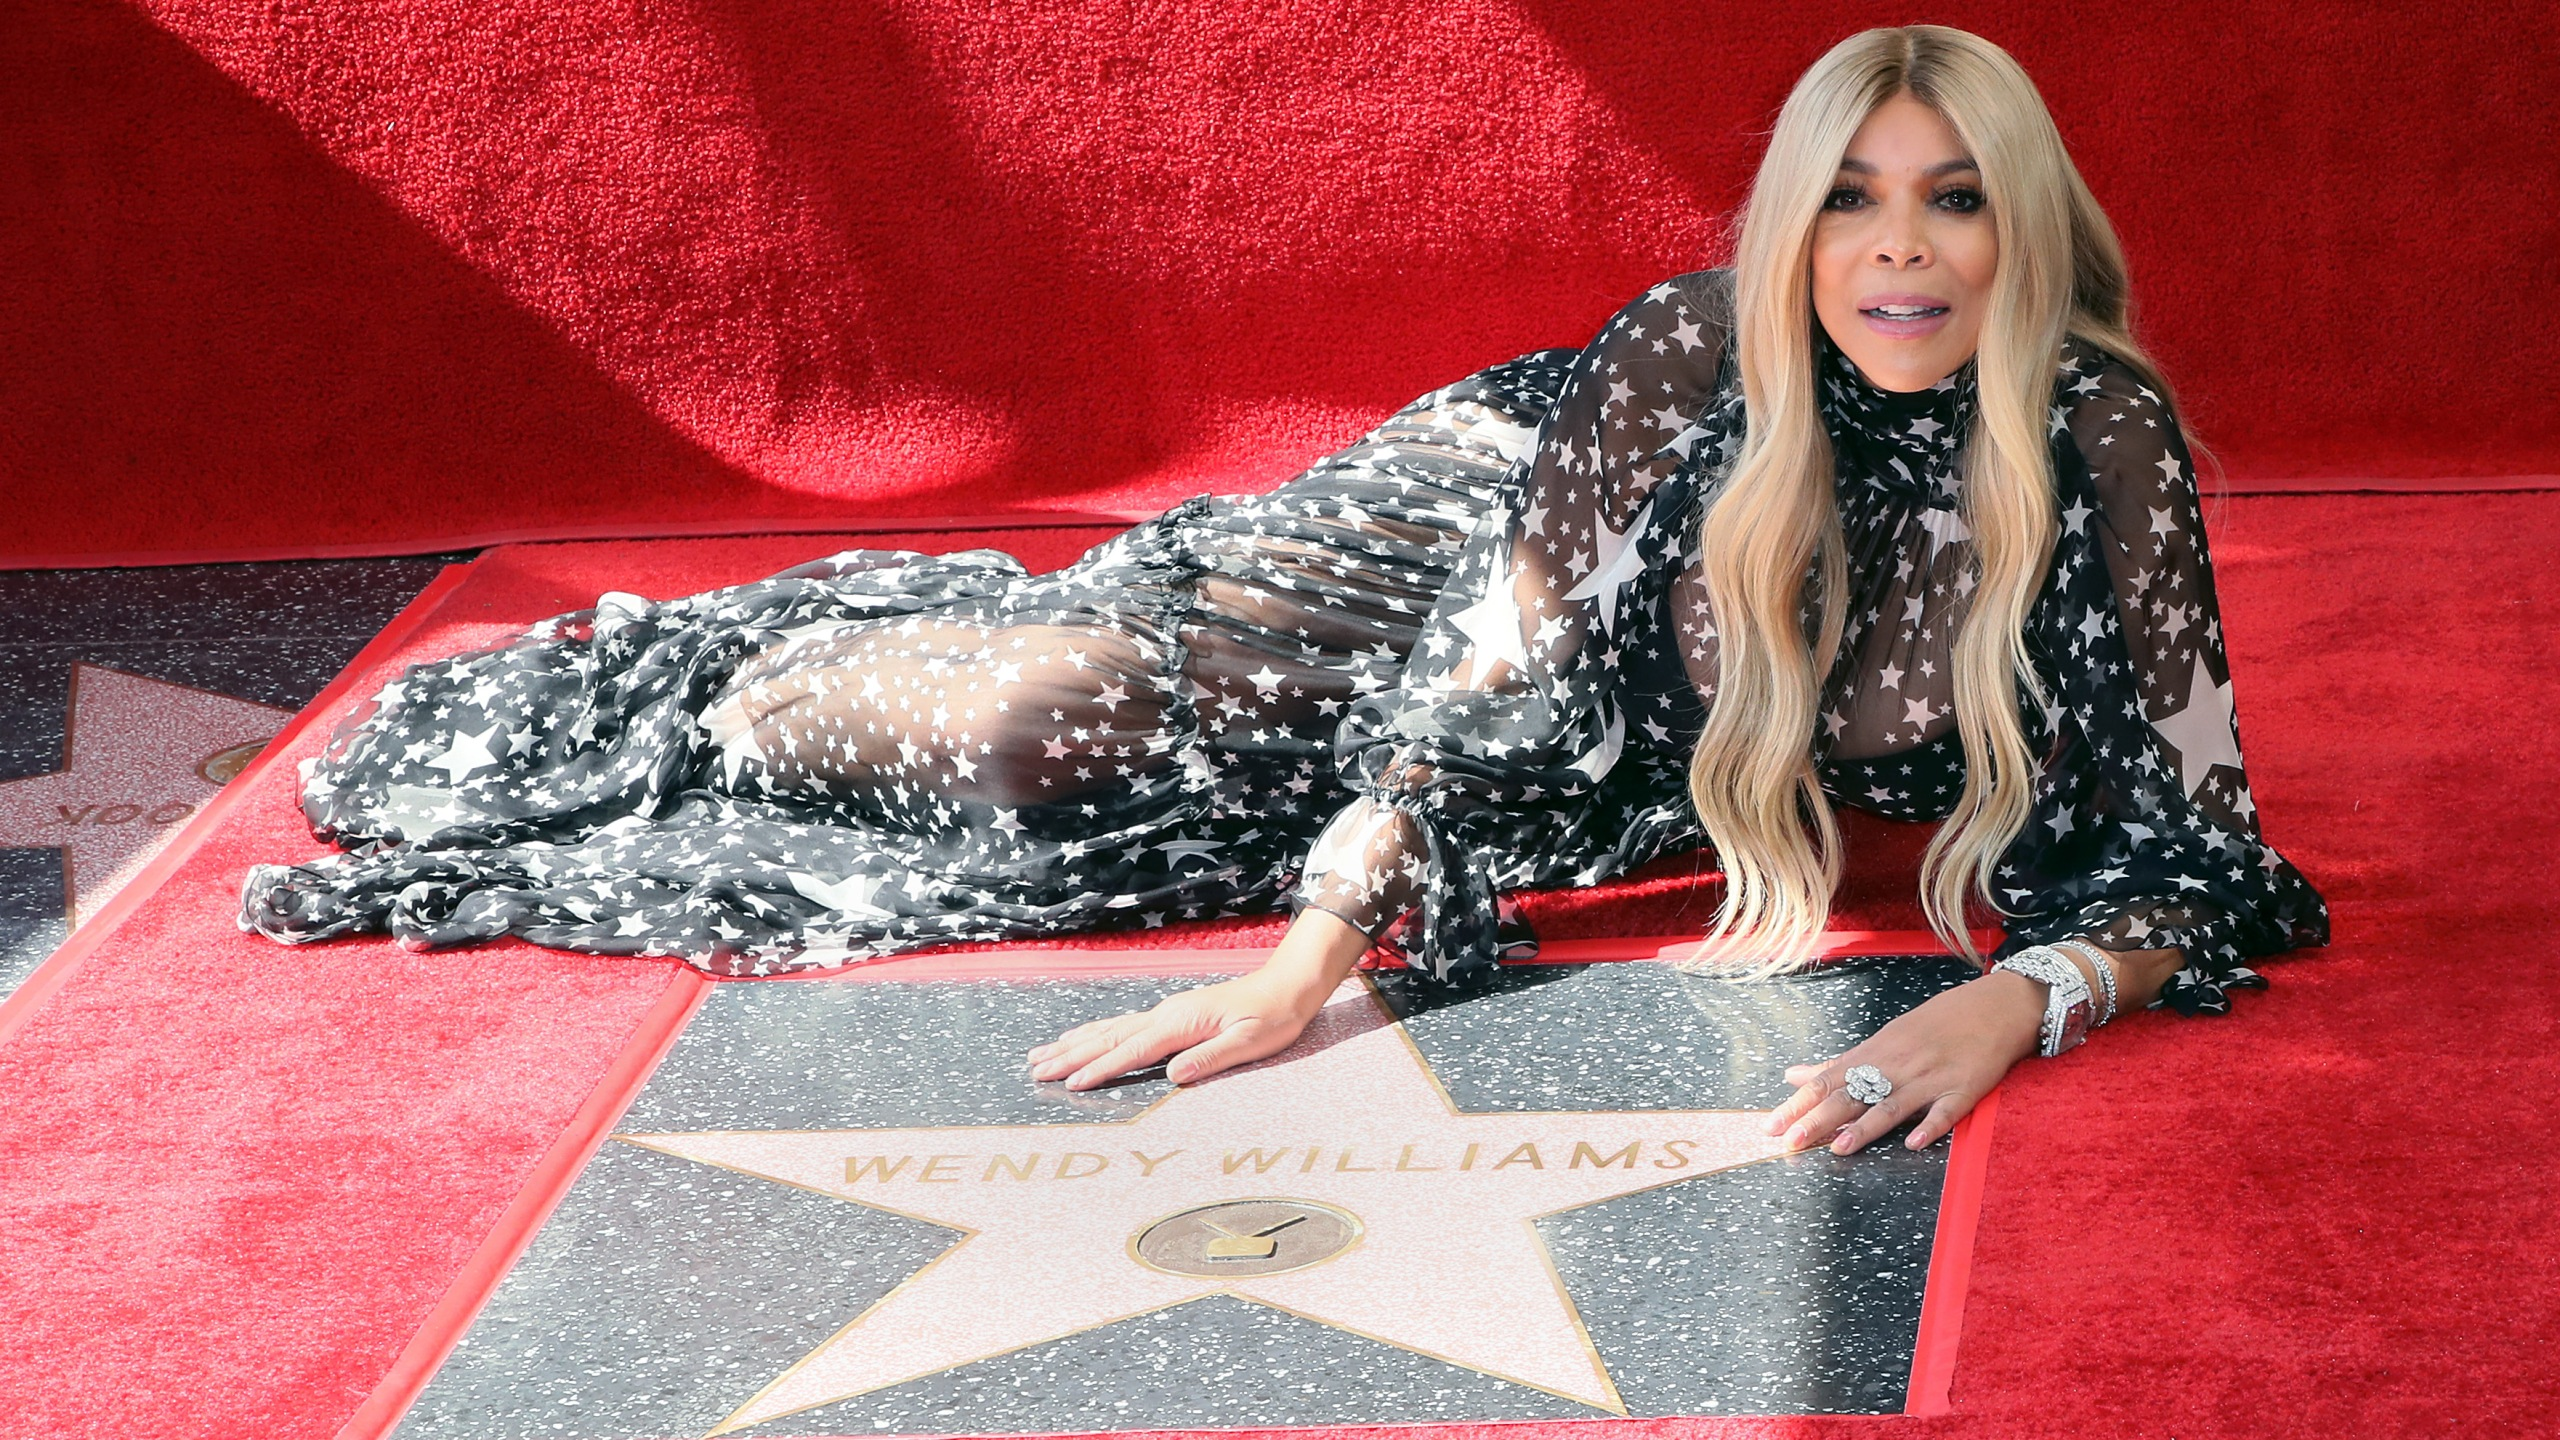 Wendy Williams is honored with a star on the Hollywood Walk of Fame on Oct. 17, 2019. (Credit: David Livingston / Getty Images)